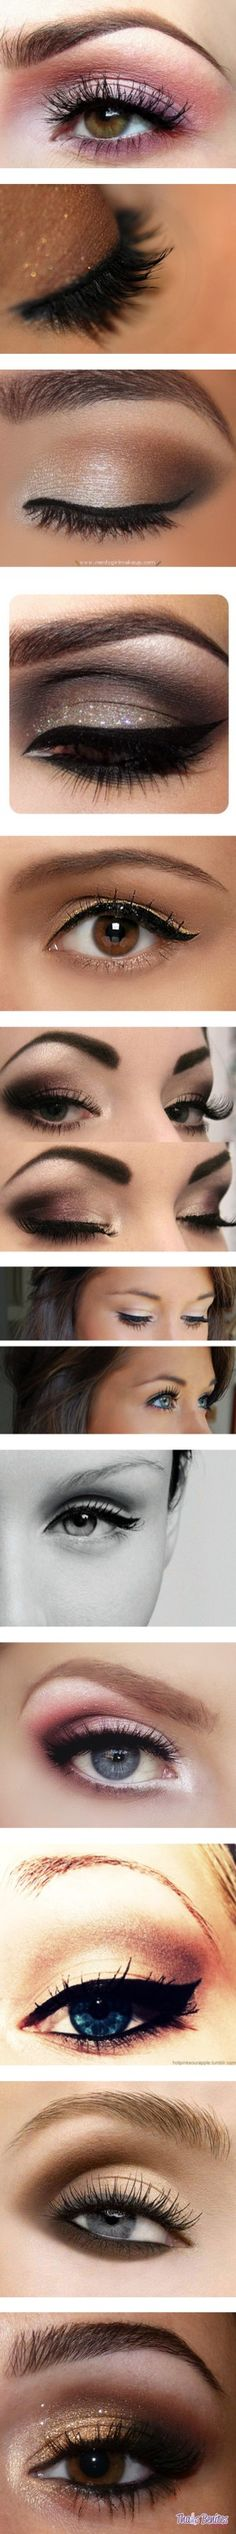 Make up Inspiration.